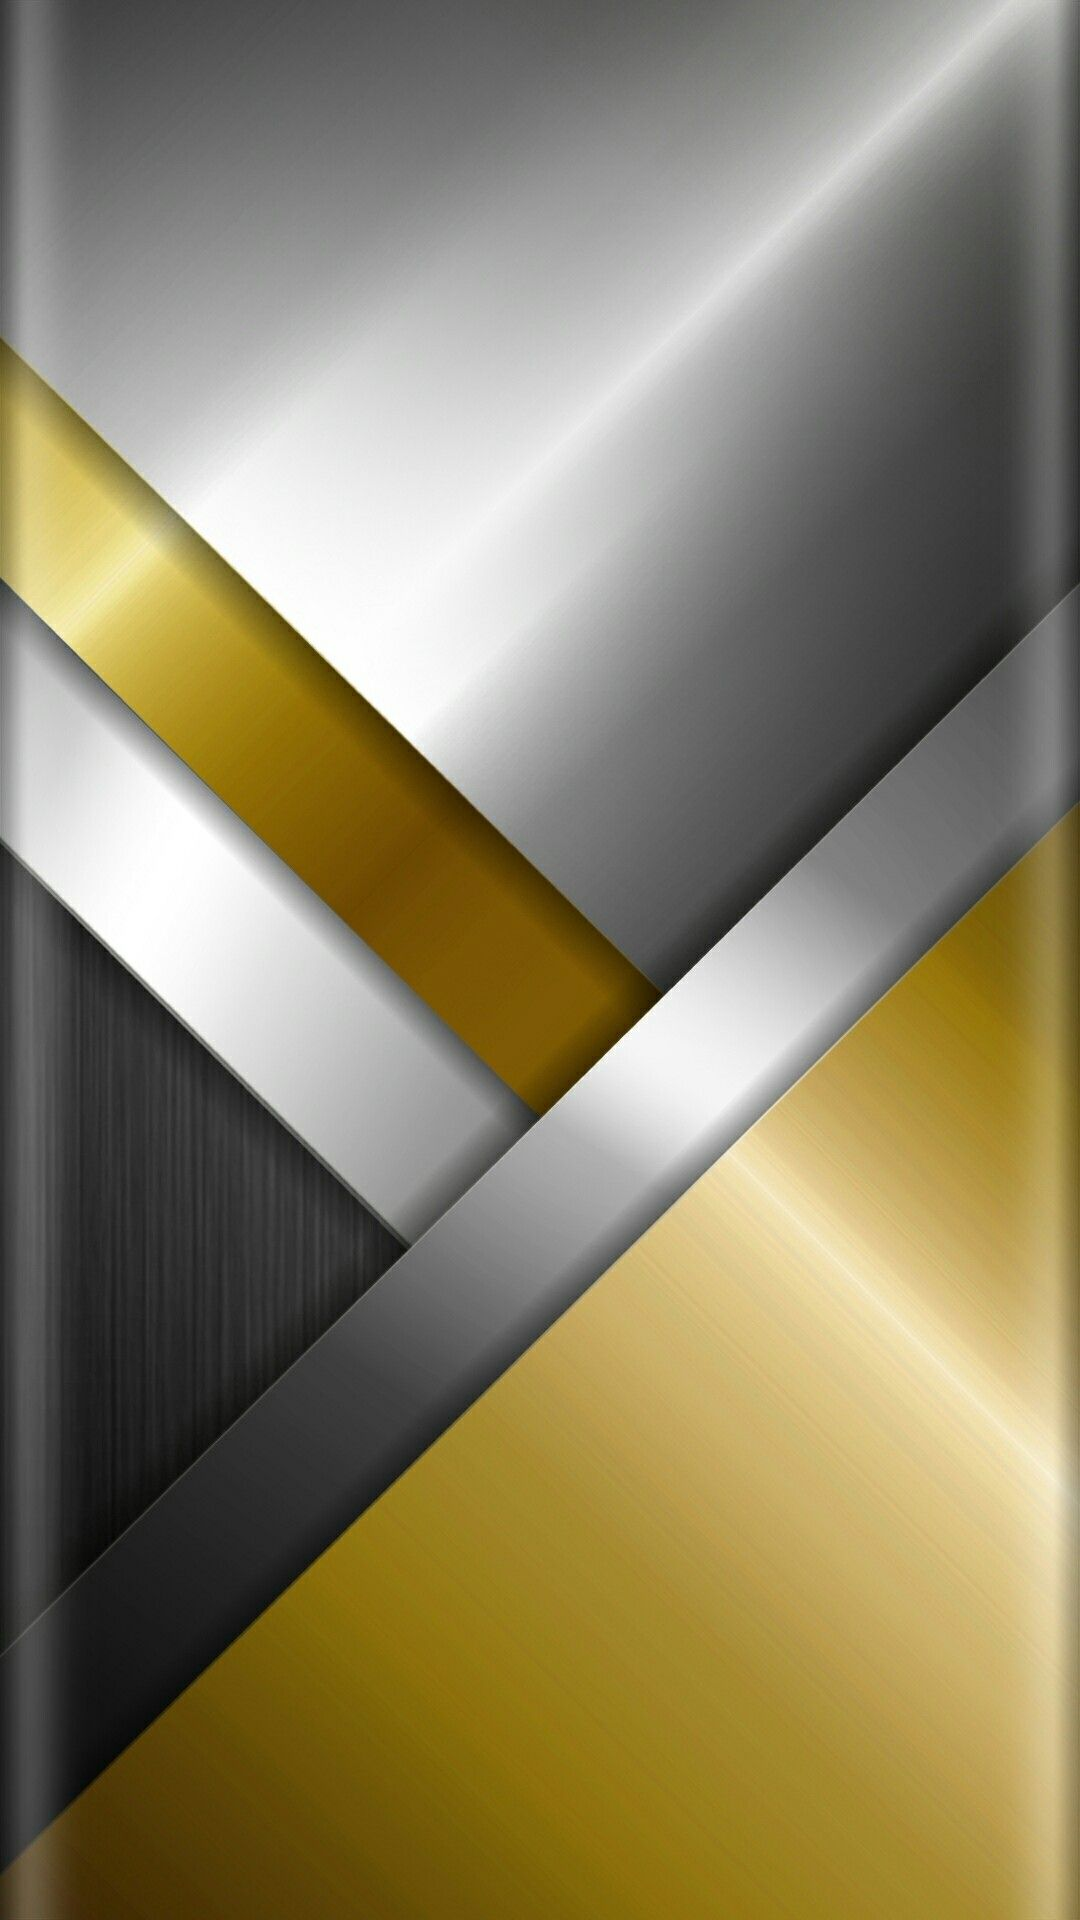 Chrome And Gold Abstract Wallpaper фоновые изображения